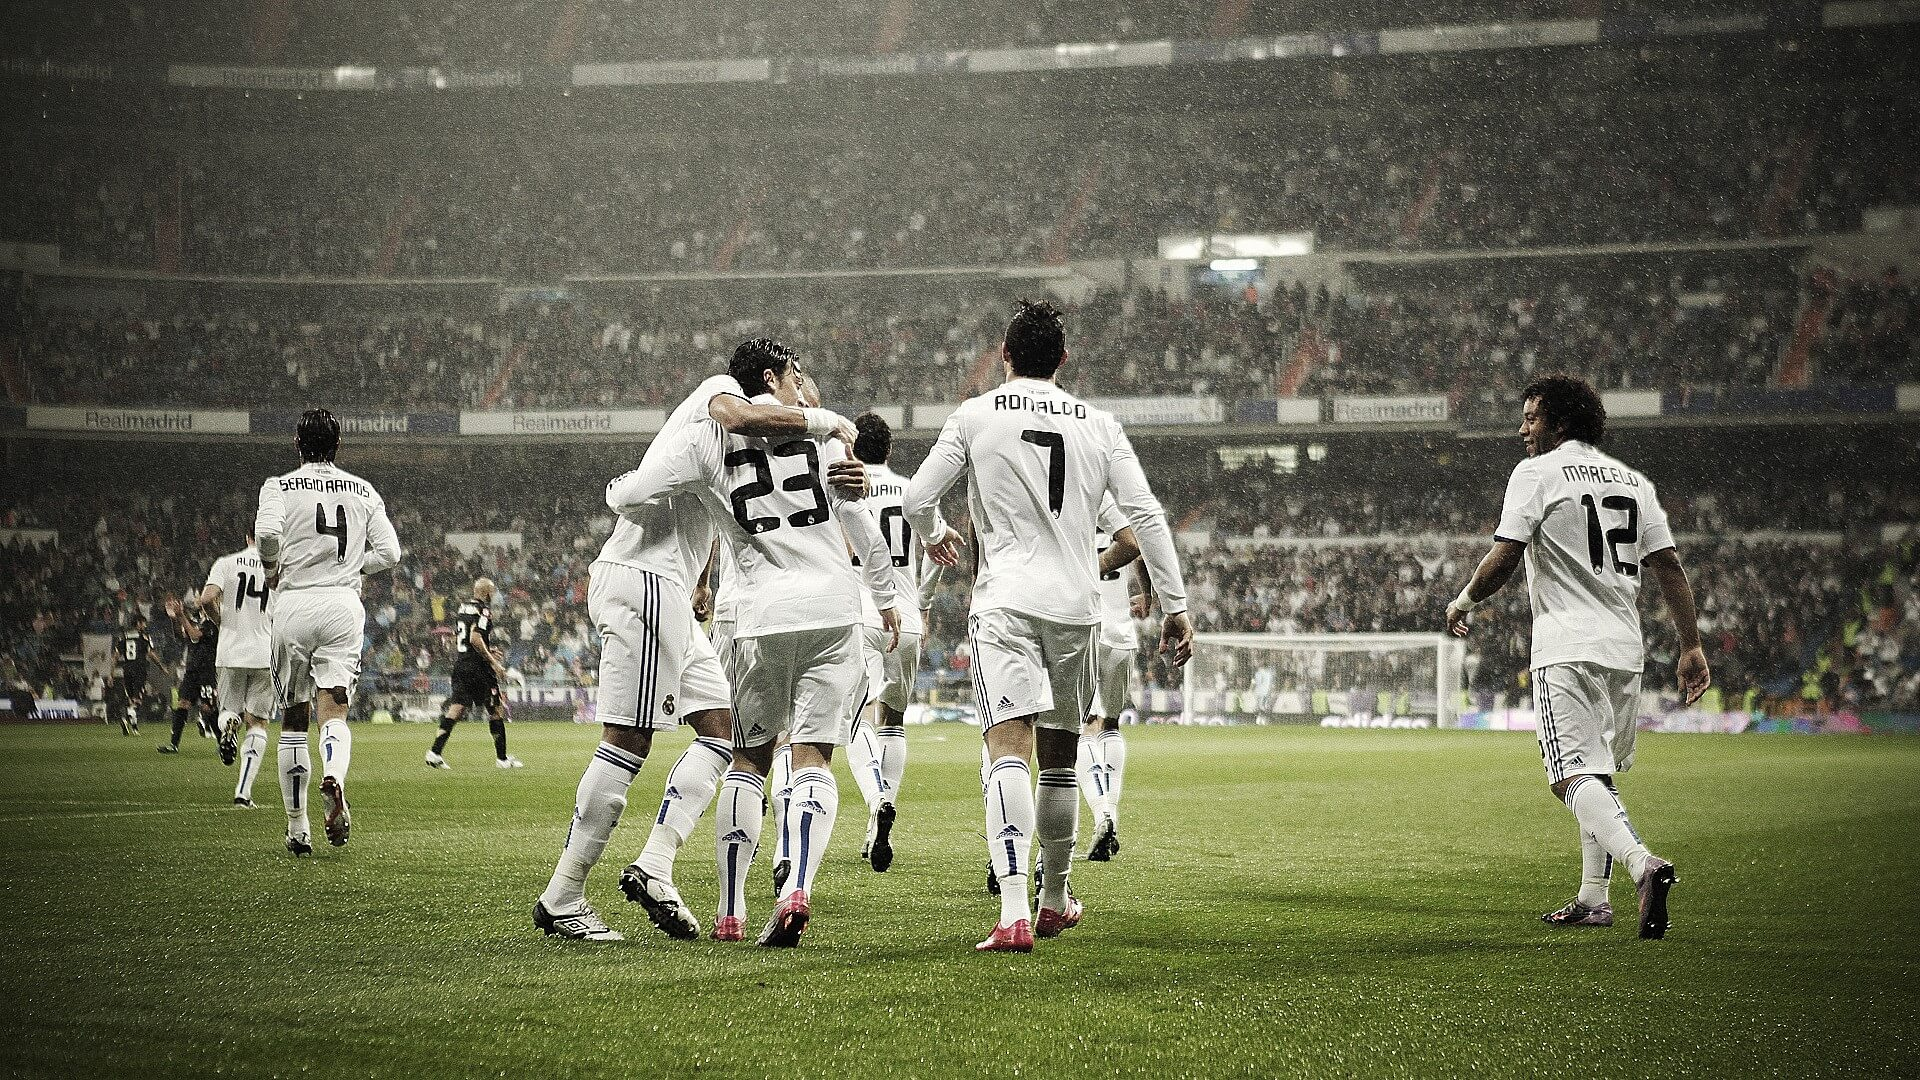 FC Real Madrid Wallpapers for Laptop